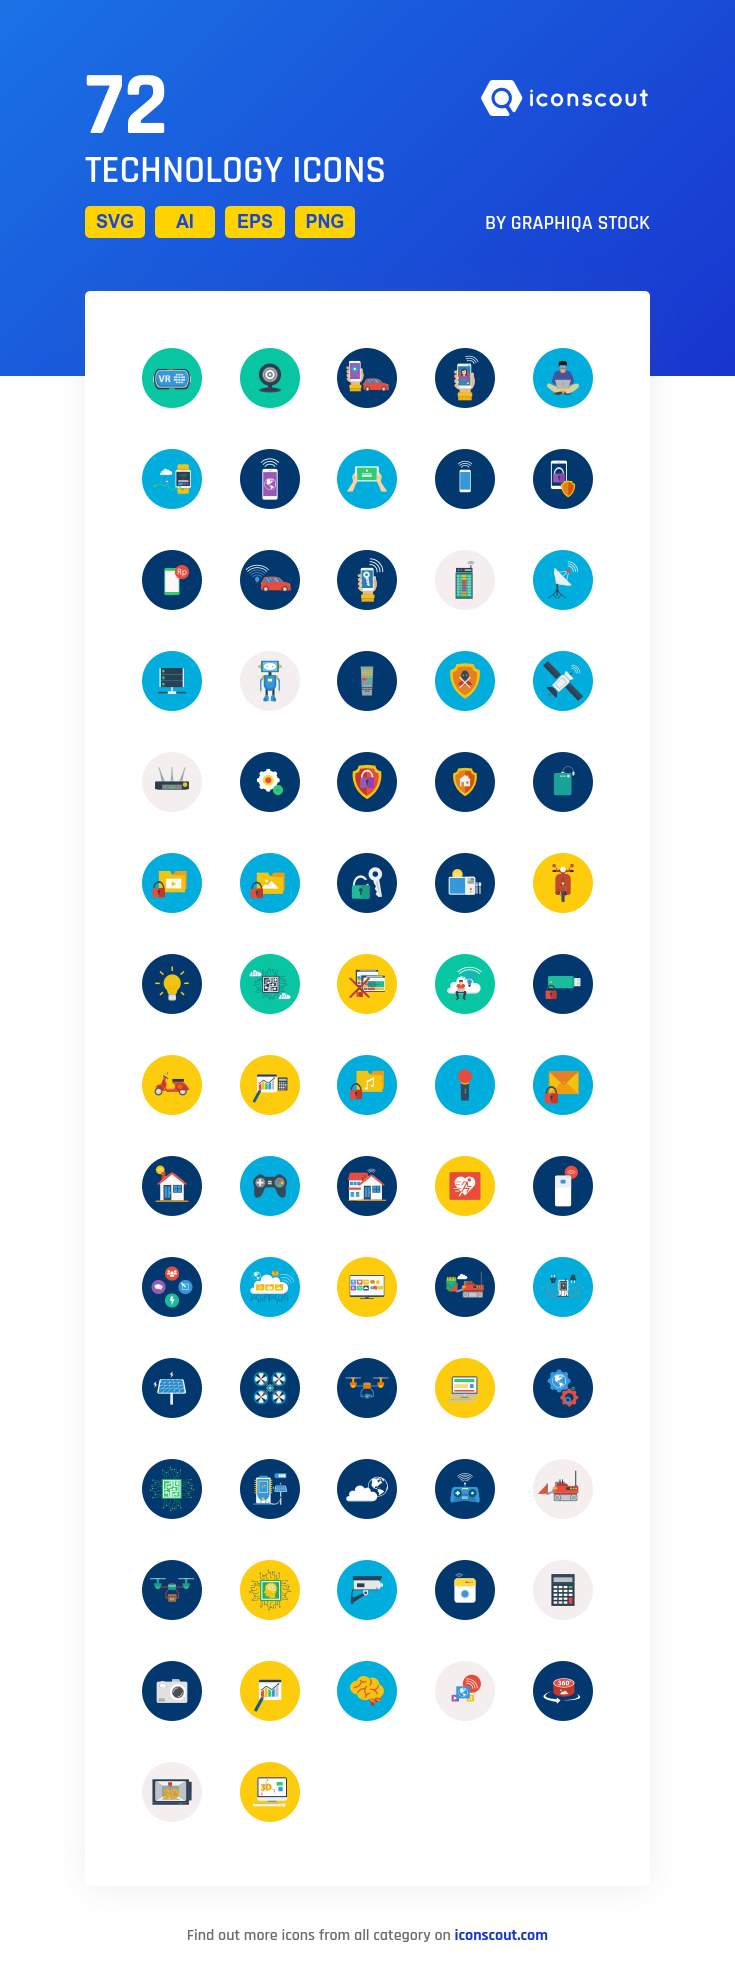 Download Technology Icon pack Available in SVG, PNG, EPS